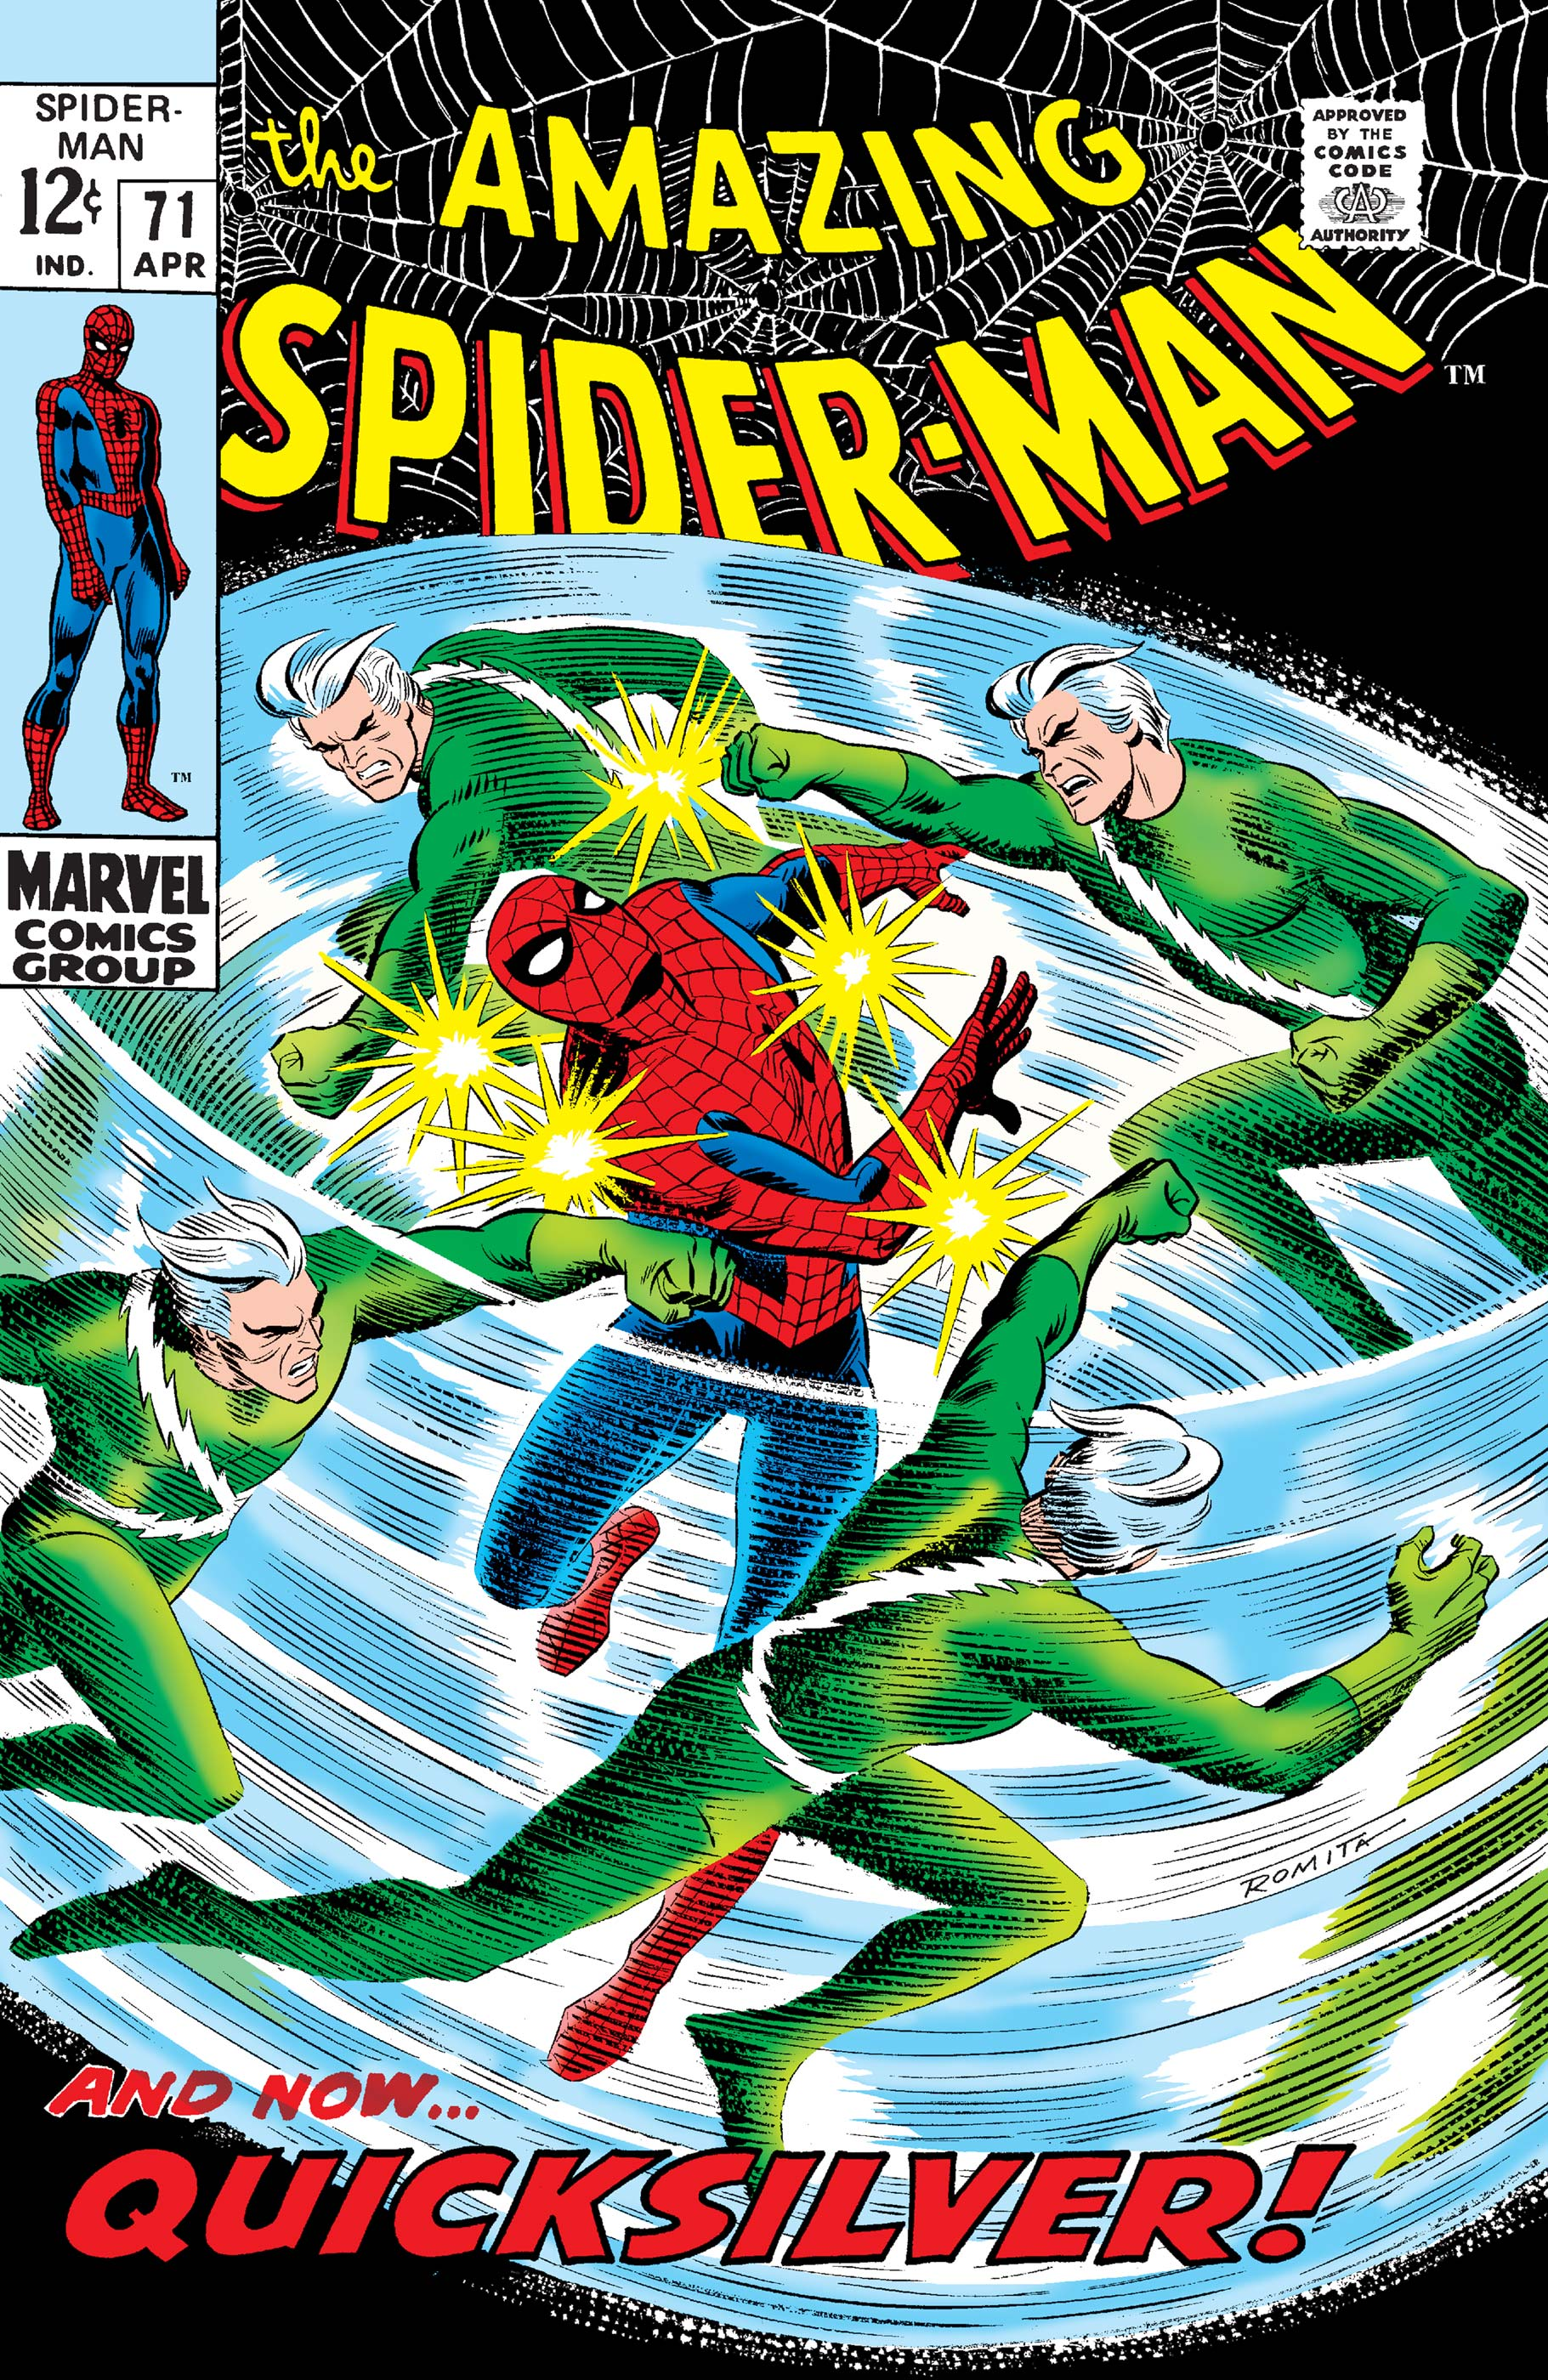 The Amazing Spider-Man (1963) #71